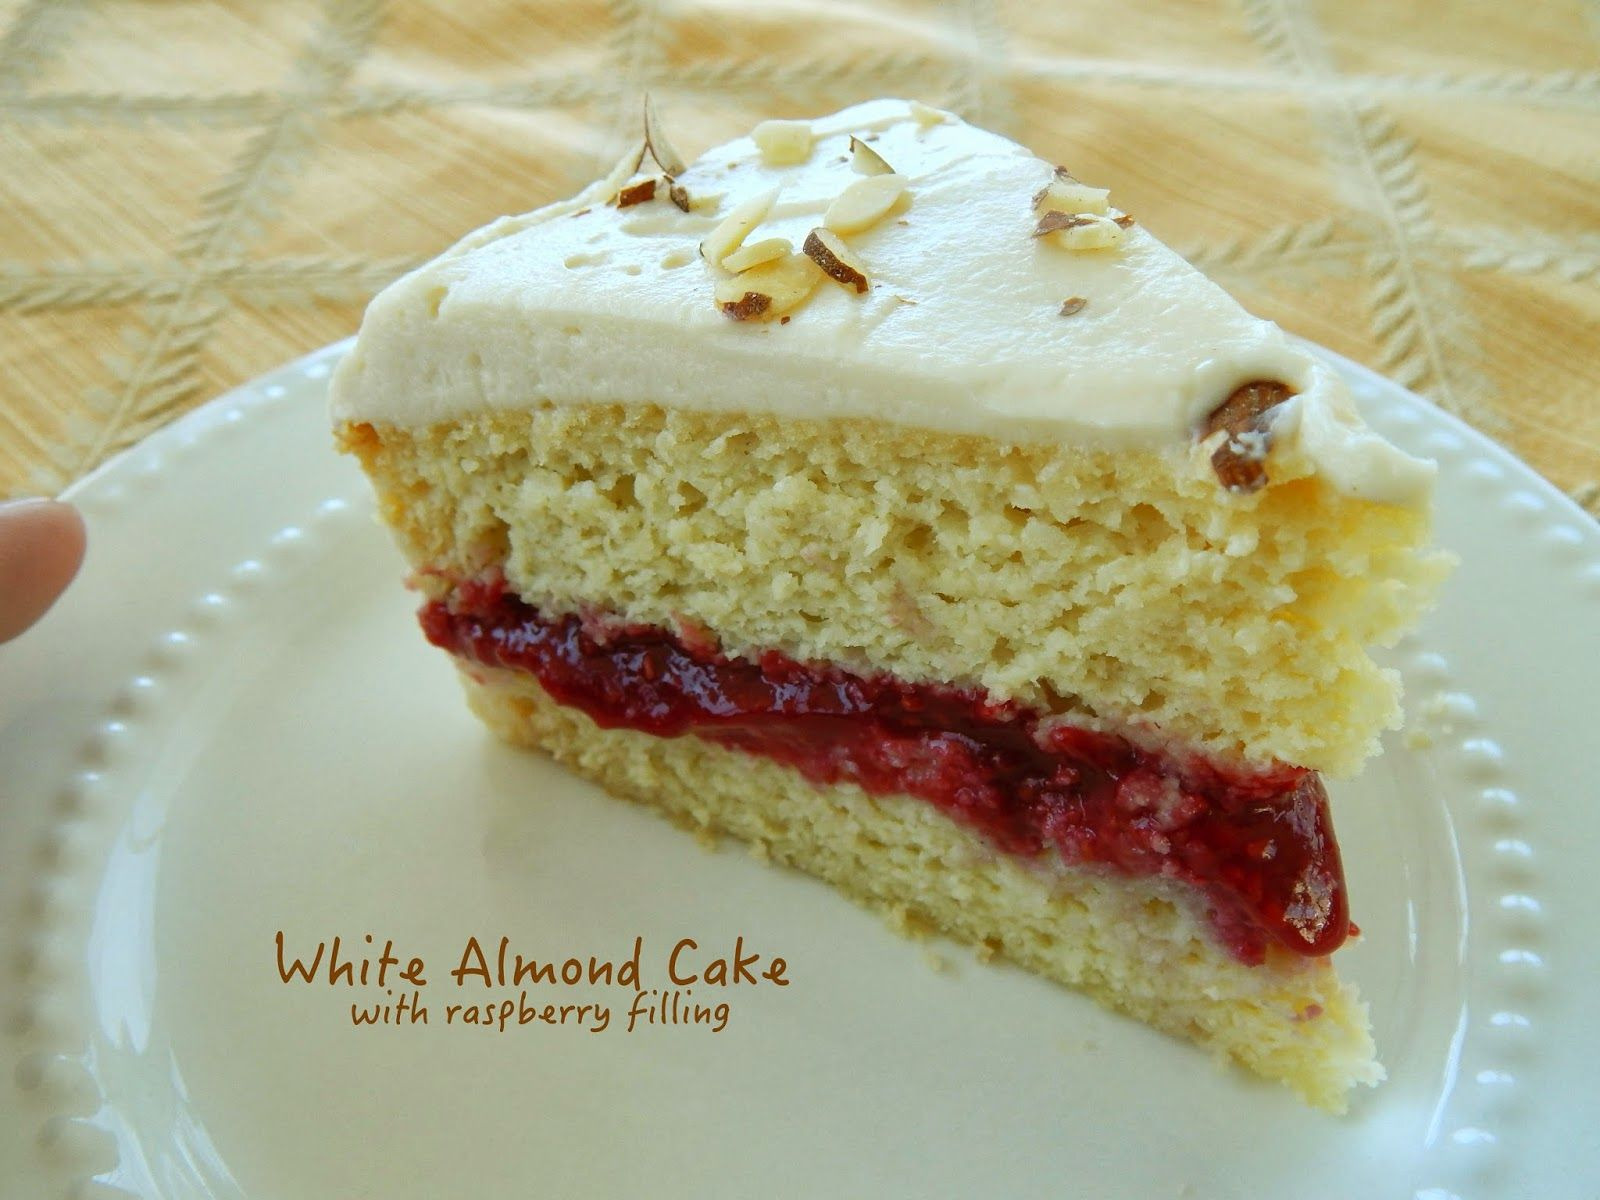 Almond Cake Recipe Low Carb: White Almond Cake With Raspberry Filling